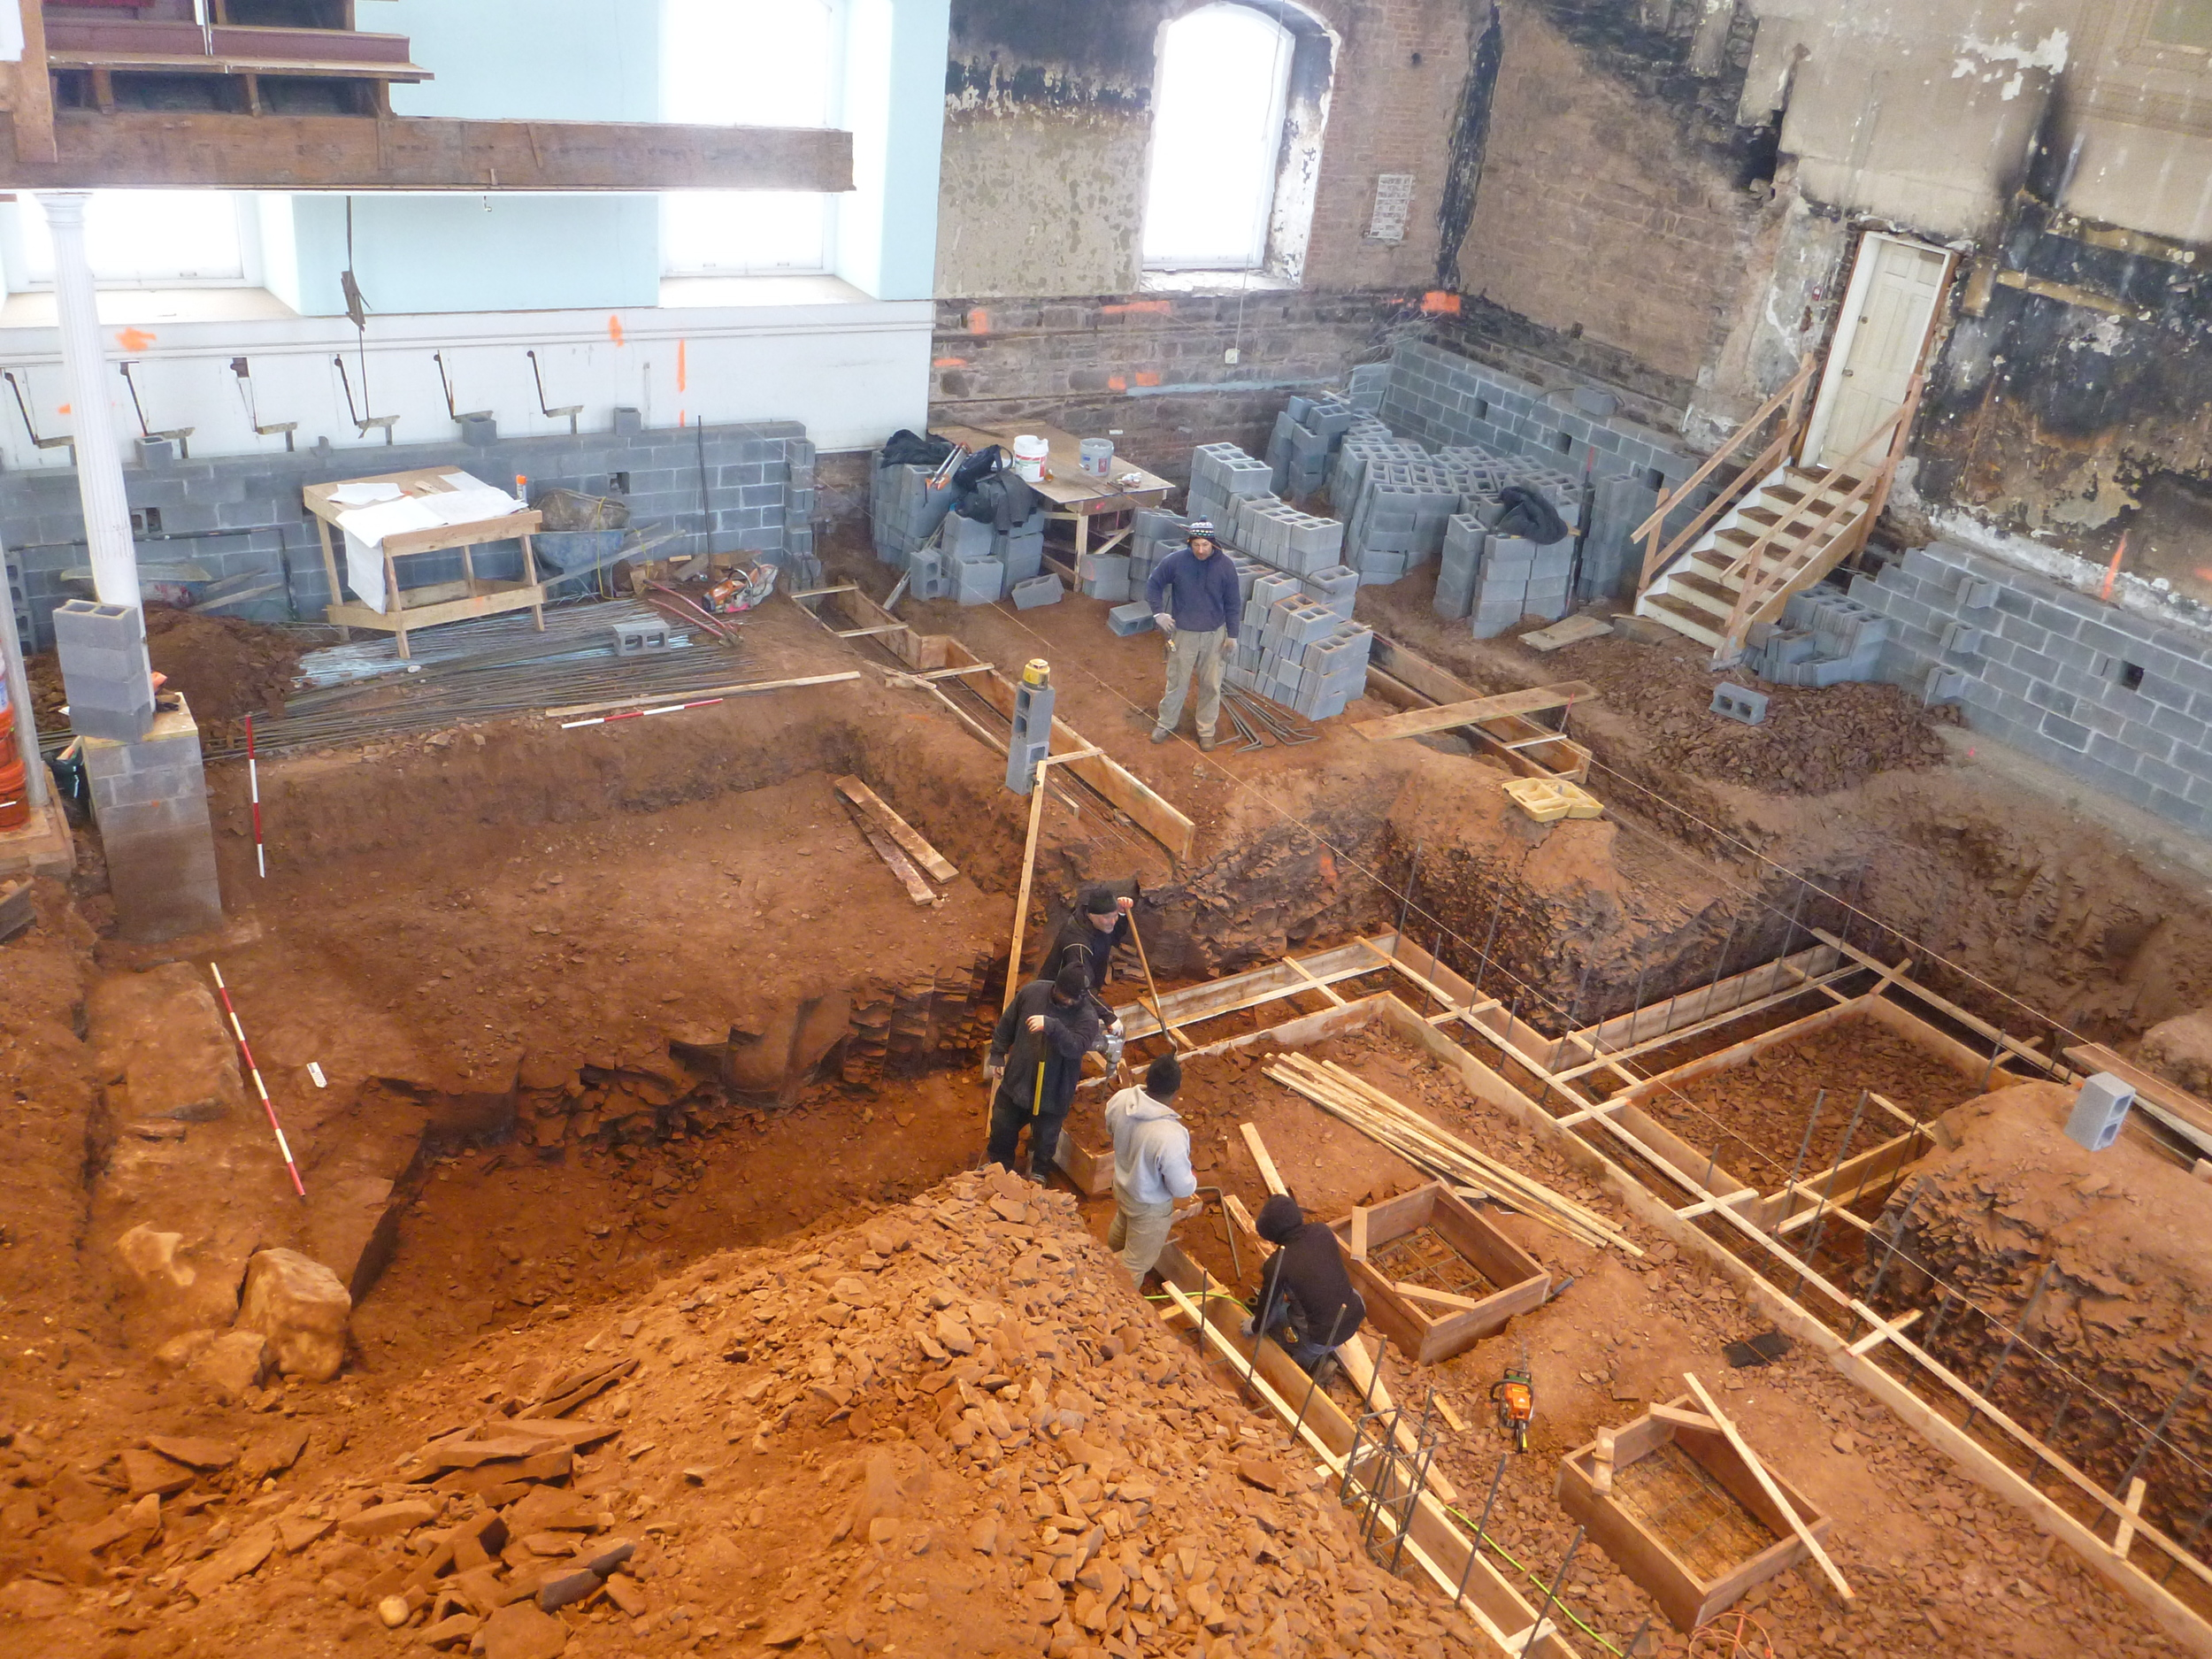 Excavations conducted on the interior of the 1812 church are conserving the historical integrity of the church's exterior.